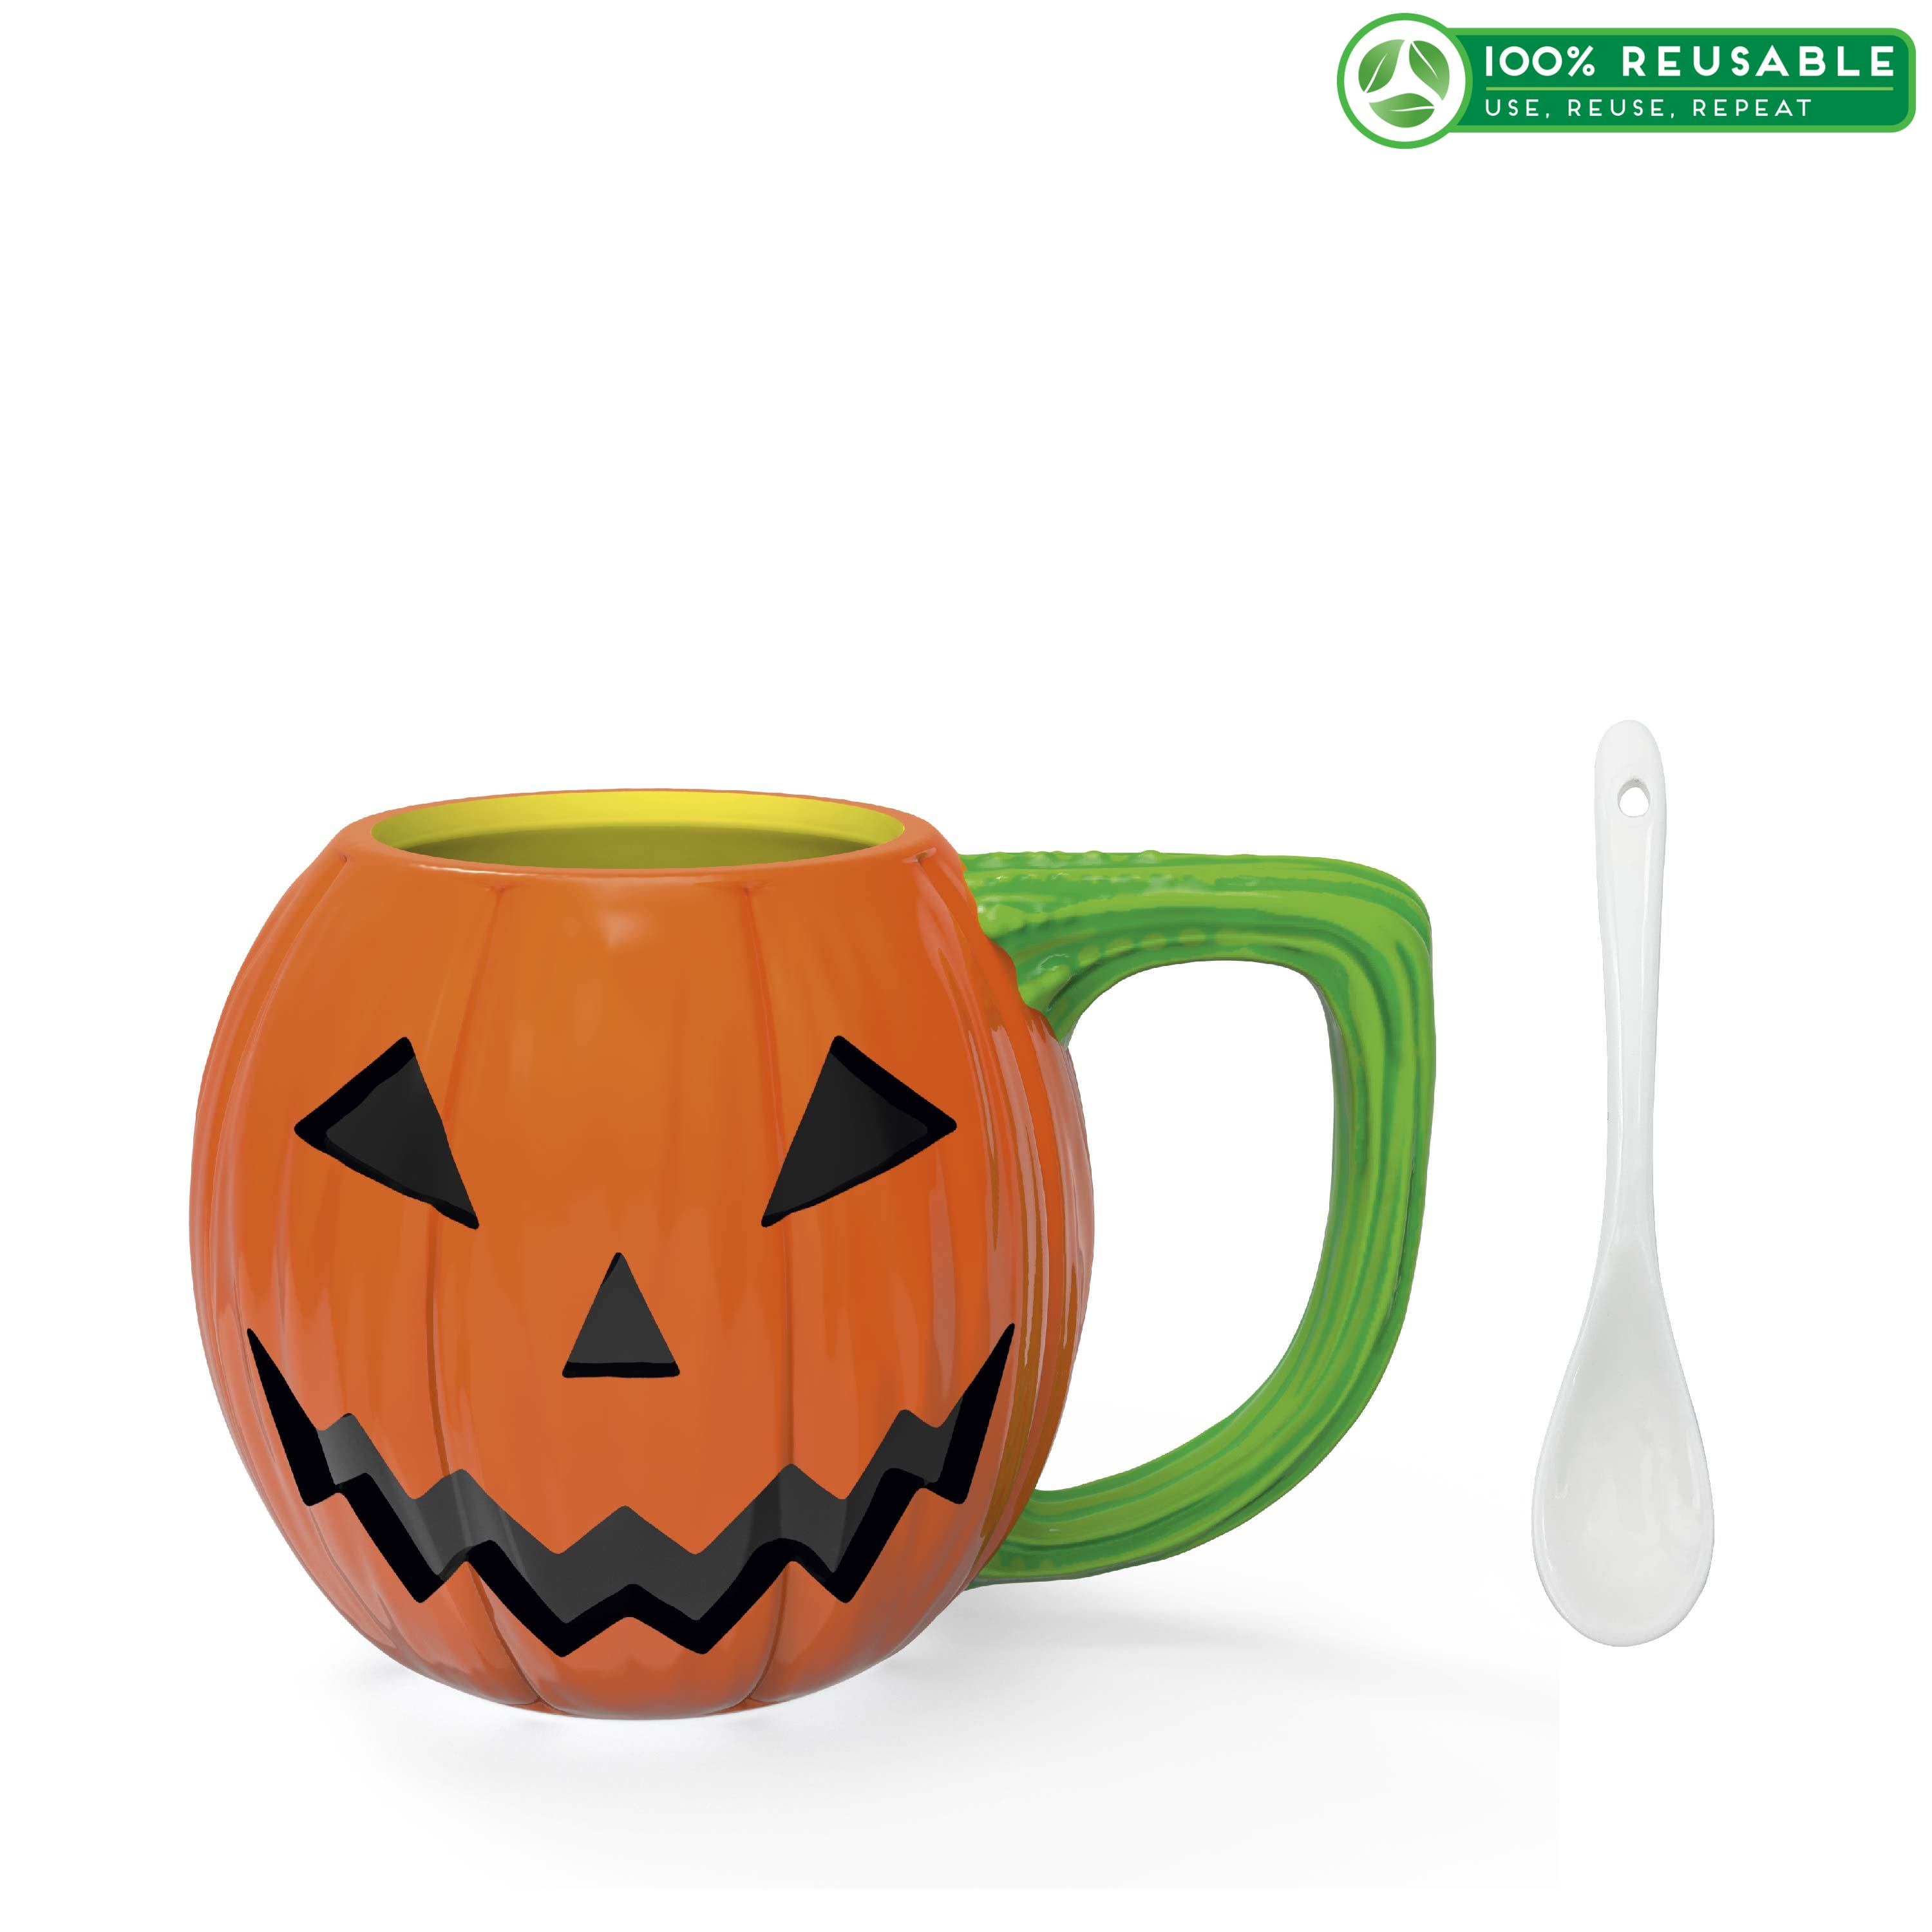 Halloween 15 ounce Coffee Mug and Spoon, Jack O' Lantern slideshow image 1